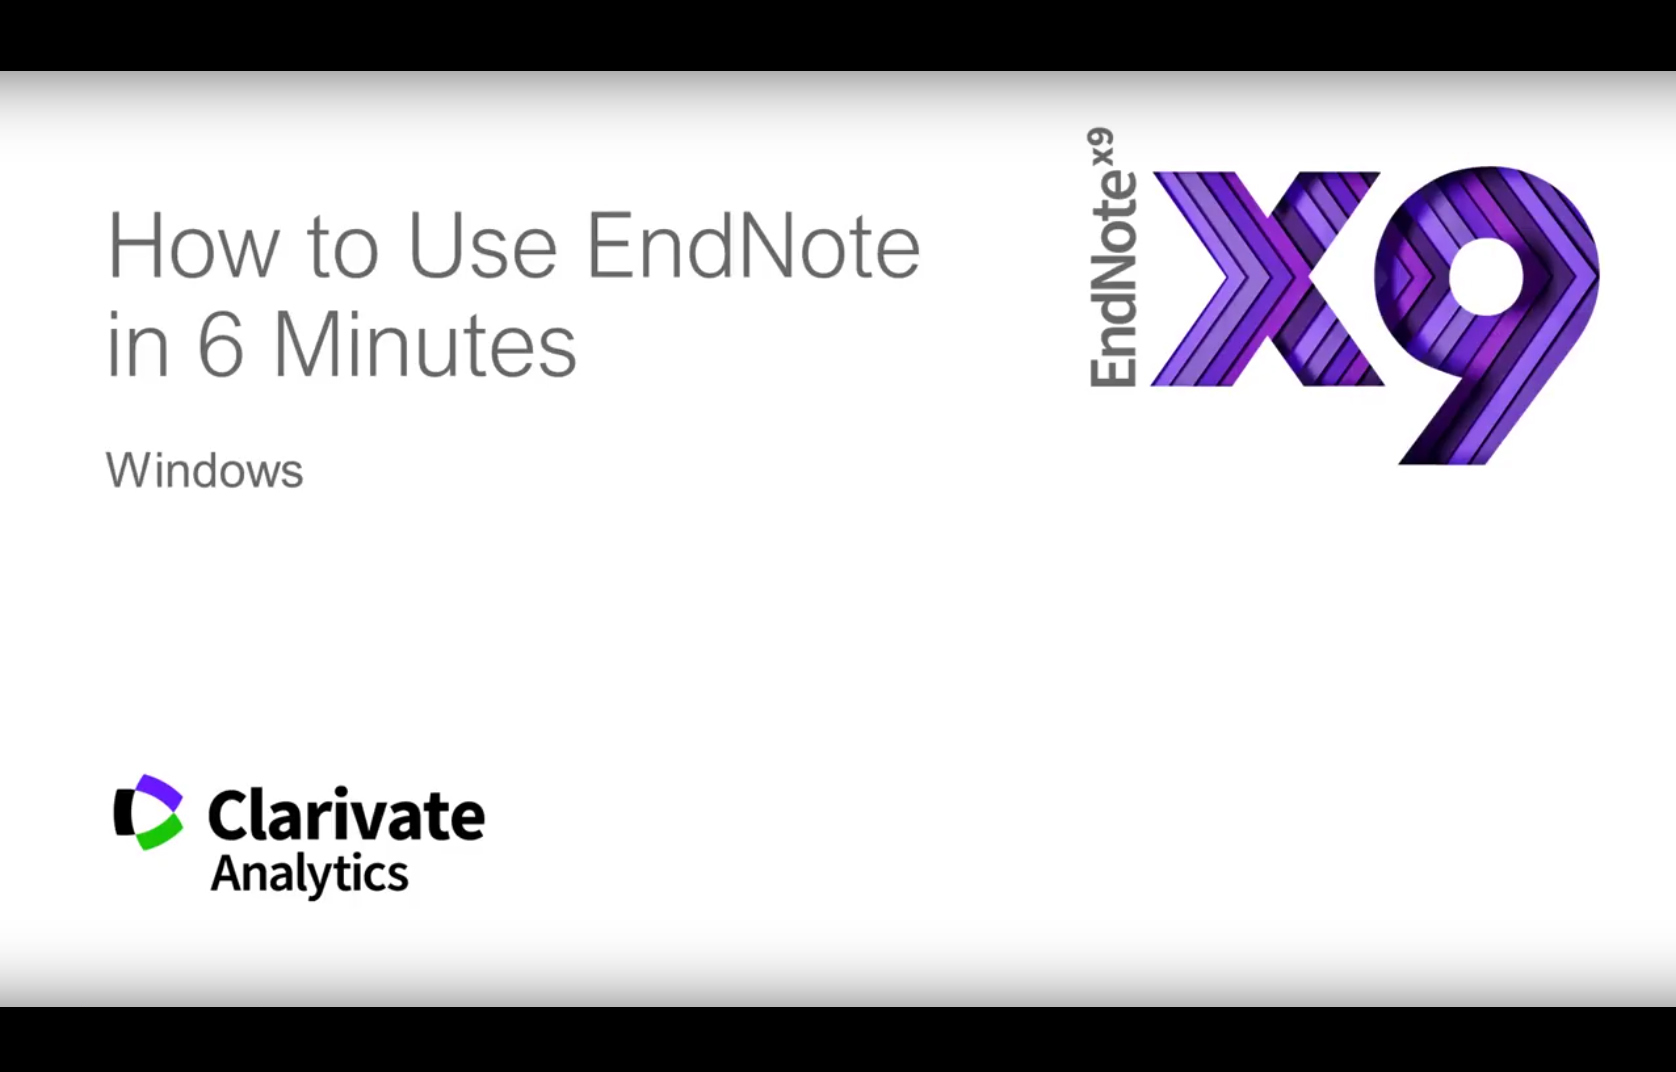 How to use Endnote in 6 minutes. (For Windows)